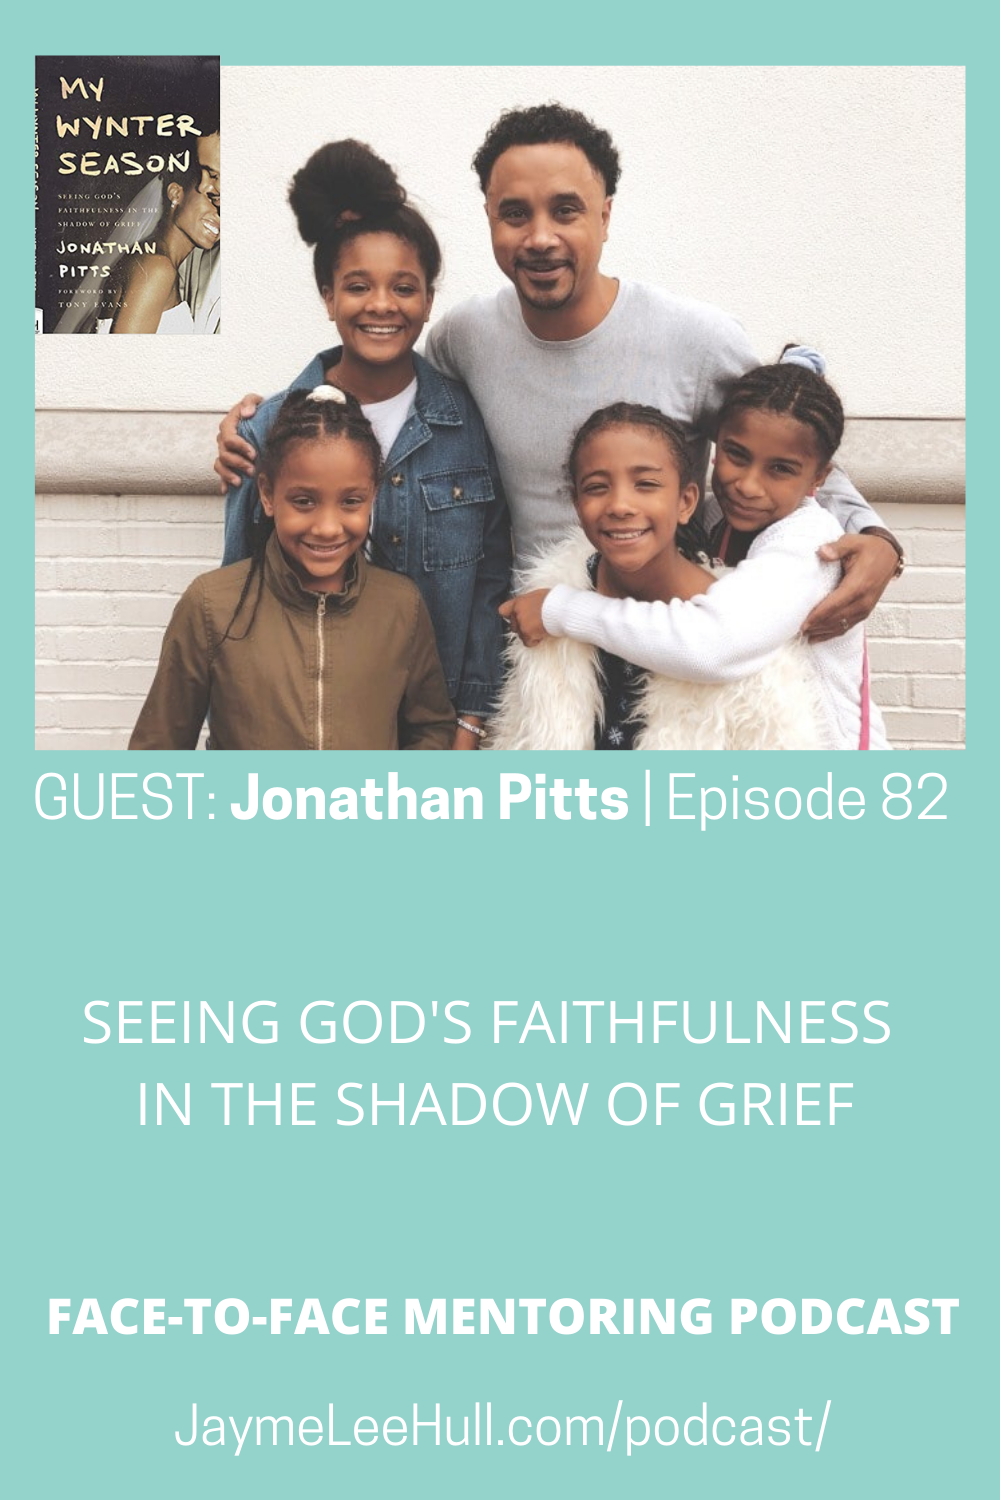 Today's guest is Jonathan Pitts author of My Wyter Season: Seeing God's Faithfulness in the Shadow of Grief. How do you cope with loss? How does anyone still have faith in God after a sudden tragedy? Jonathan shares an honest and detailed account of navigating loss and celebrating the eternal triumph of Life over death.